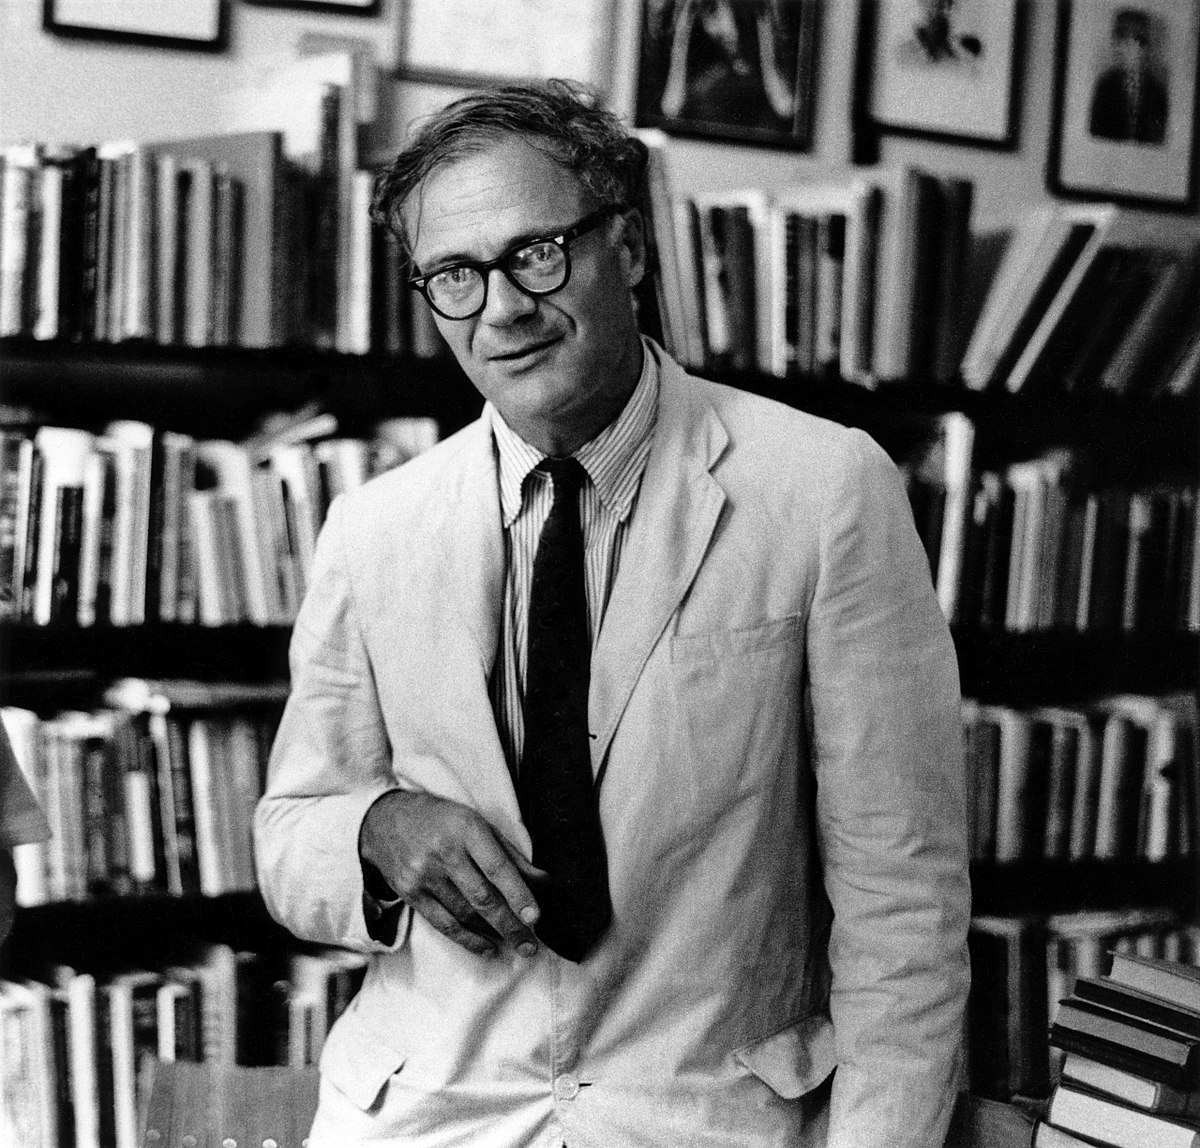 Robert Lowell, Bipolar Disorder and Creativity